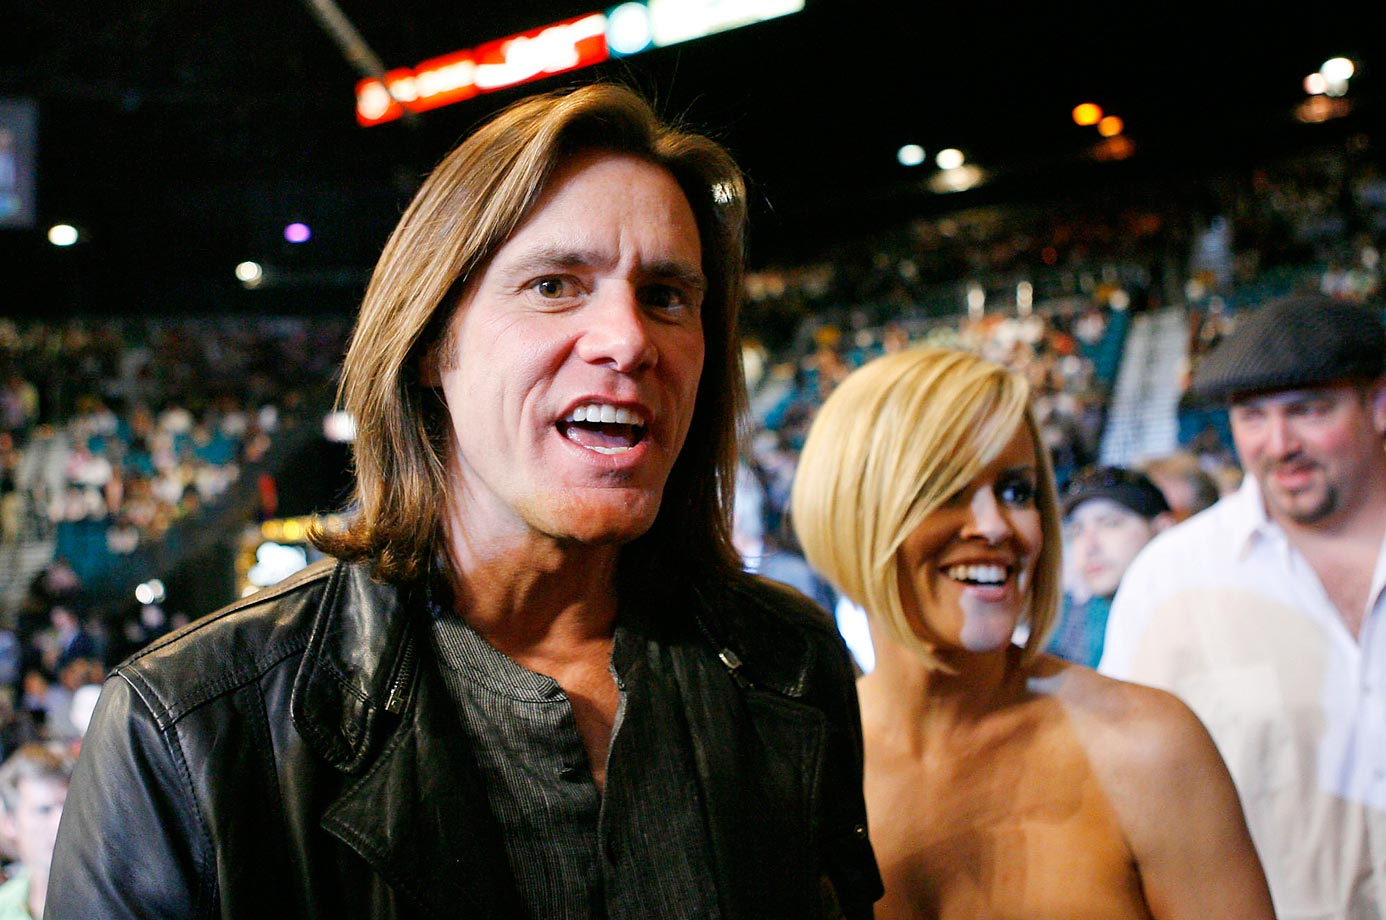 Jim Carrey and Jenny McCarthy attend the Oscar De La Hoya and Floyd Mayweather fight.